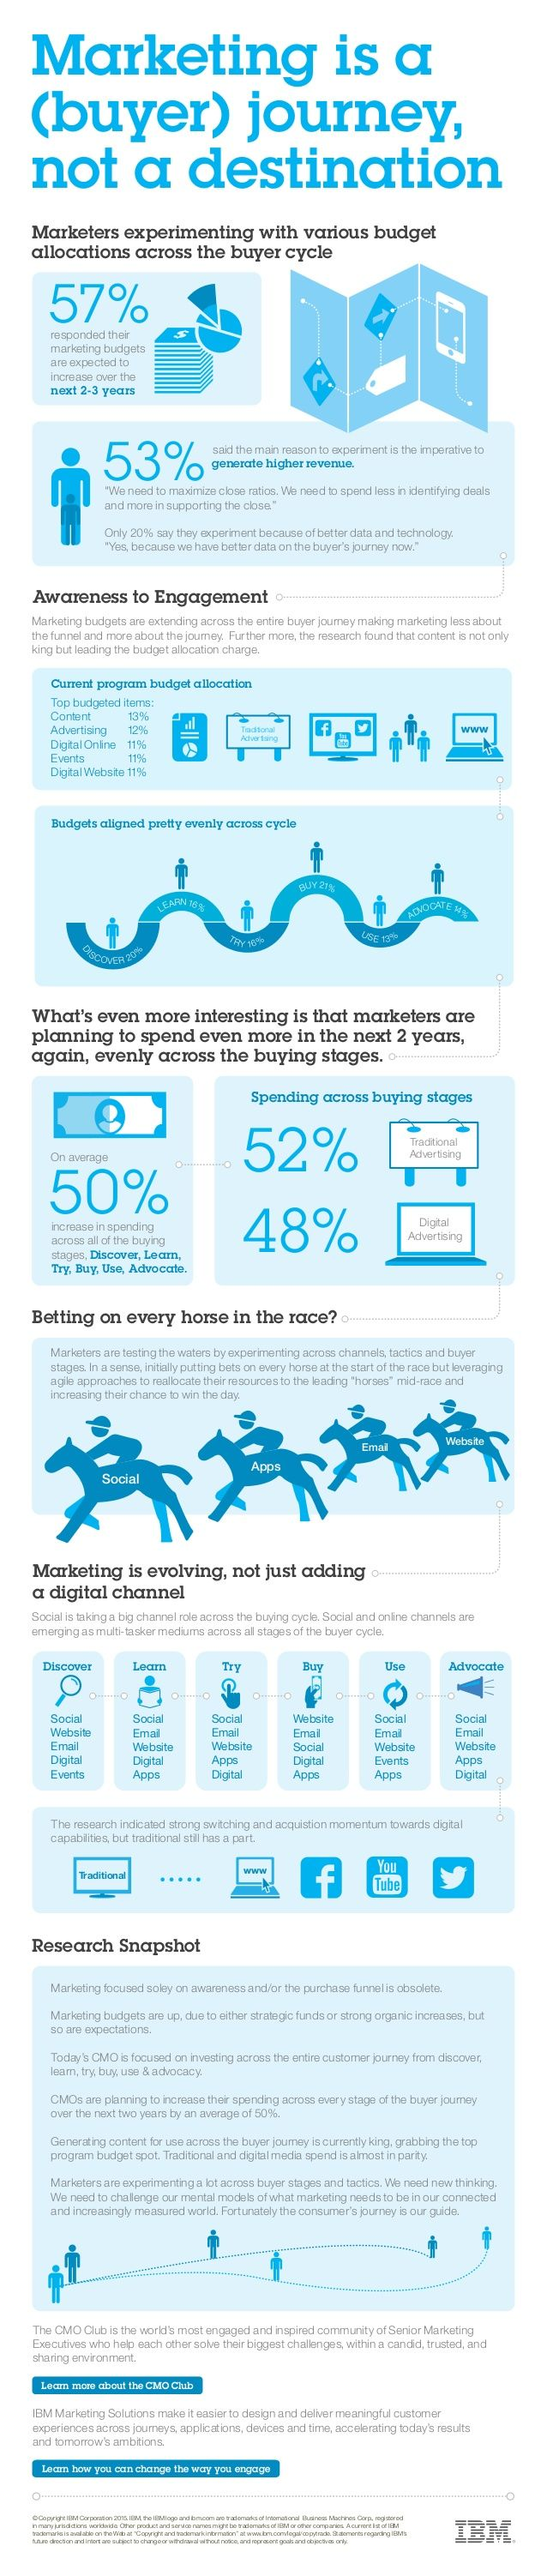 Why Is Content Marketing King In The Buyer Journey? #infographic